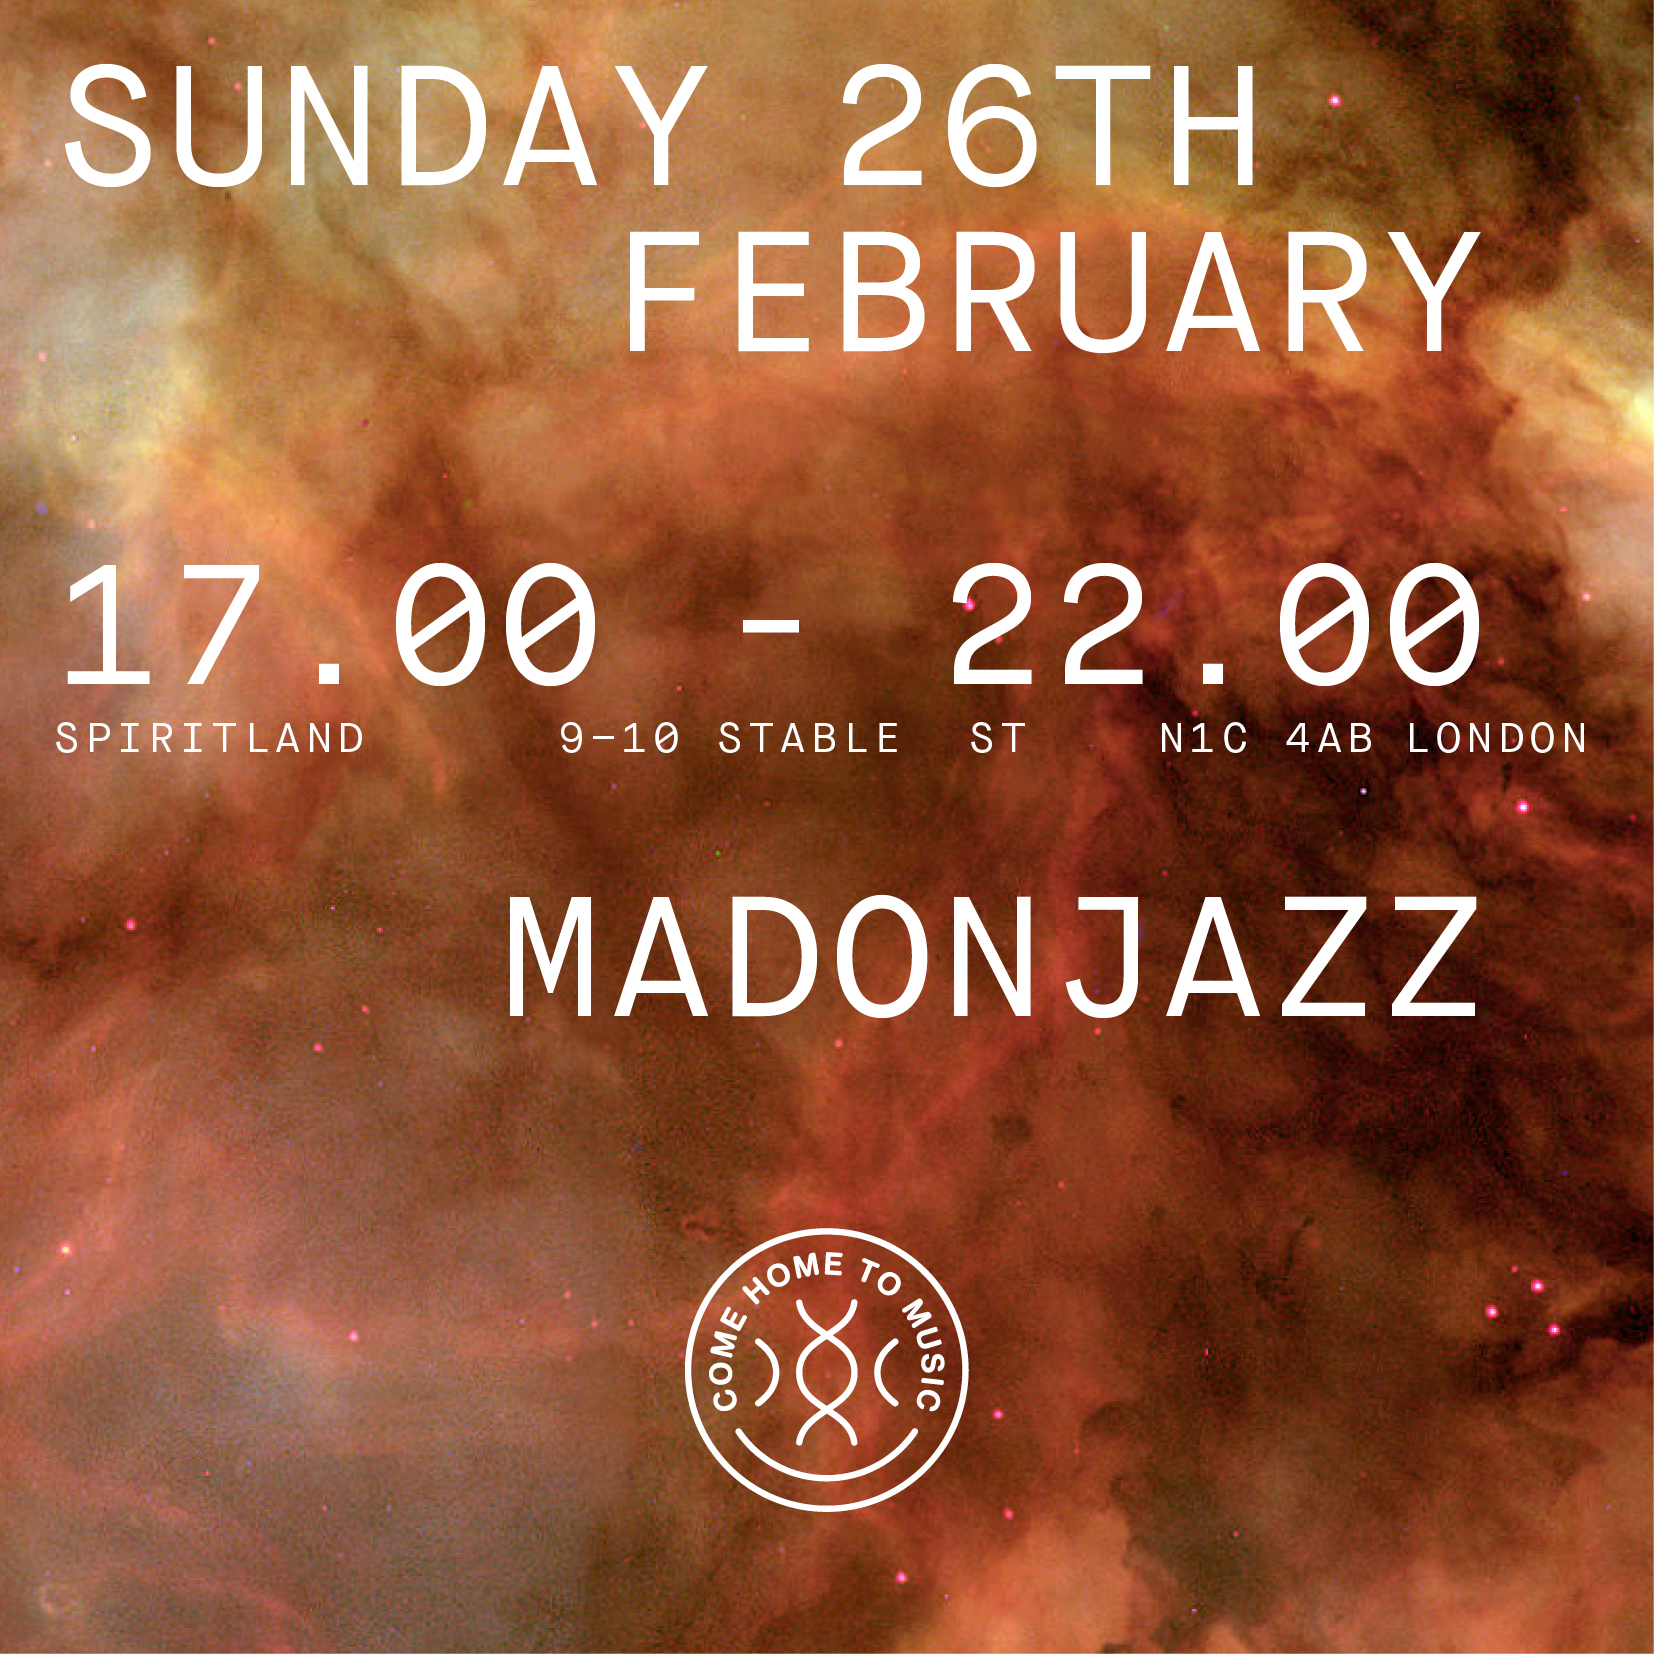 MADONJAZZ at Spiritland 26th Feb 2017 5pm